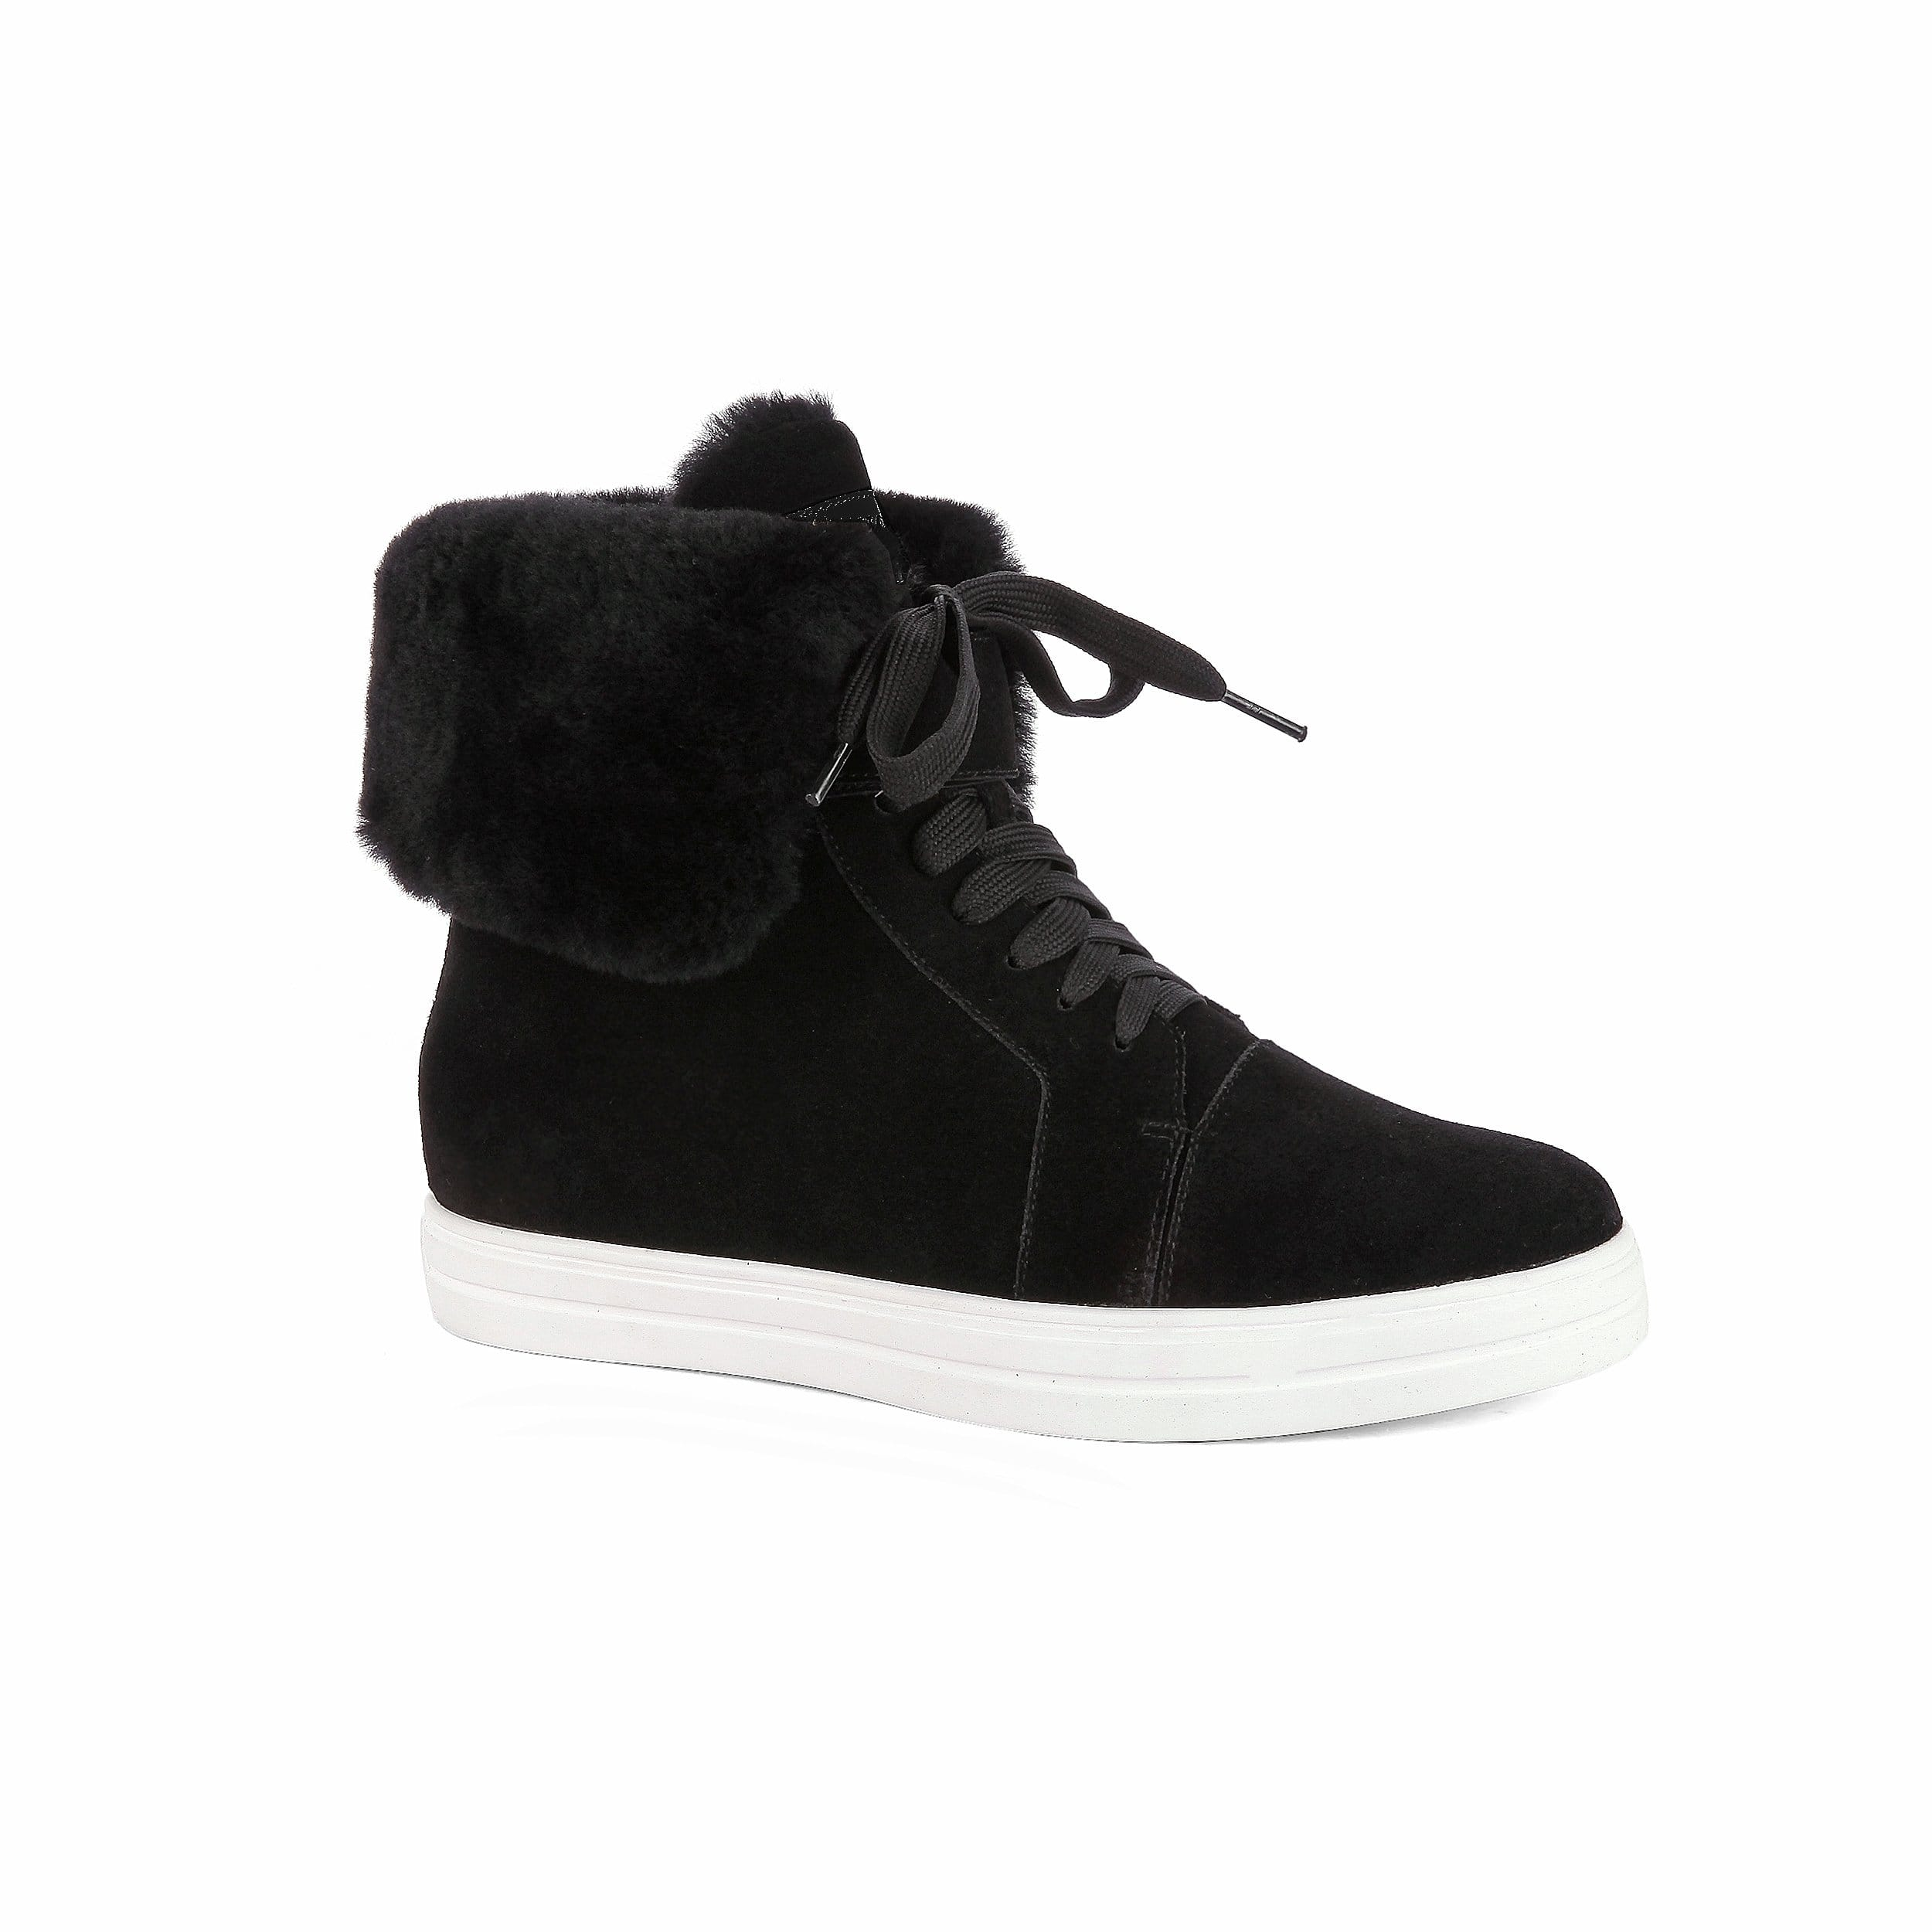 UGG Elevator Lace-up Sneaker